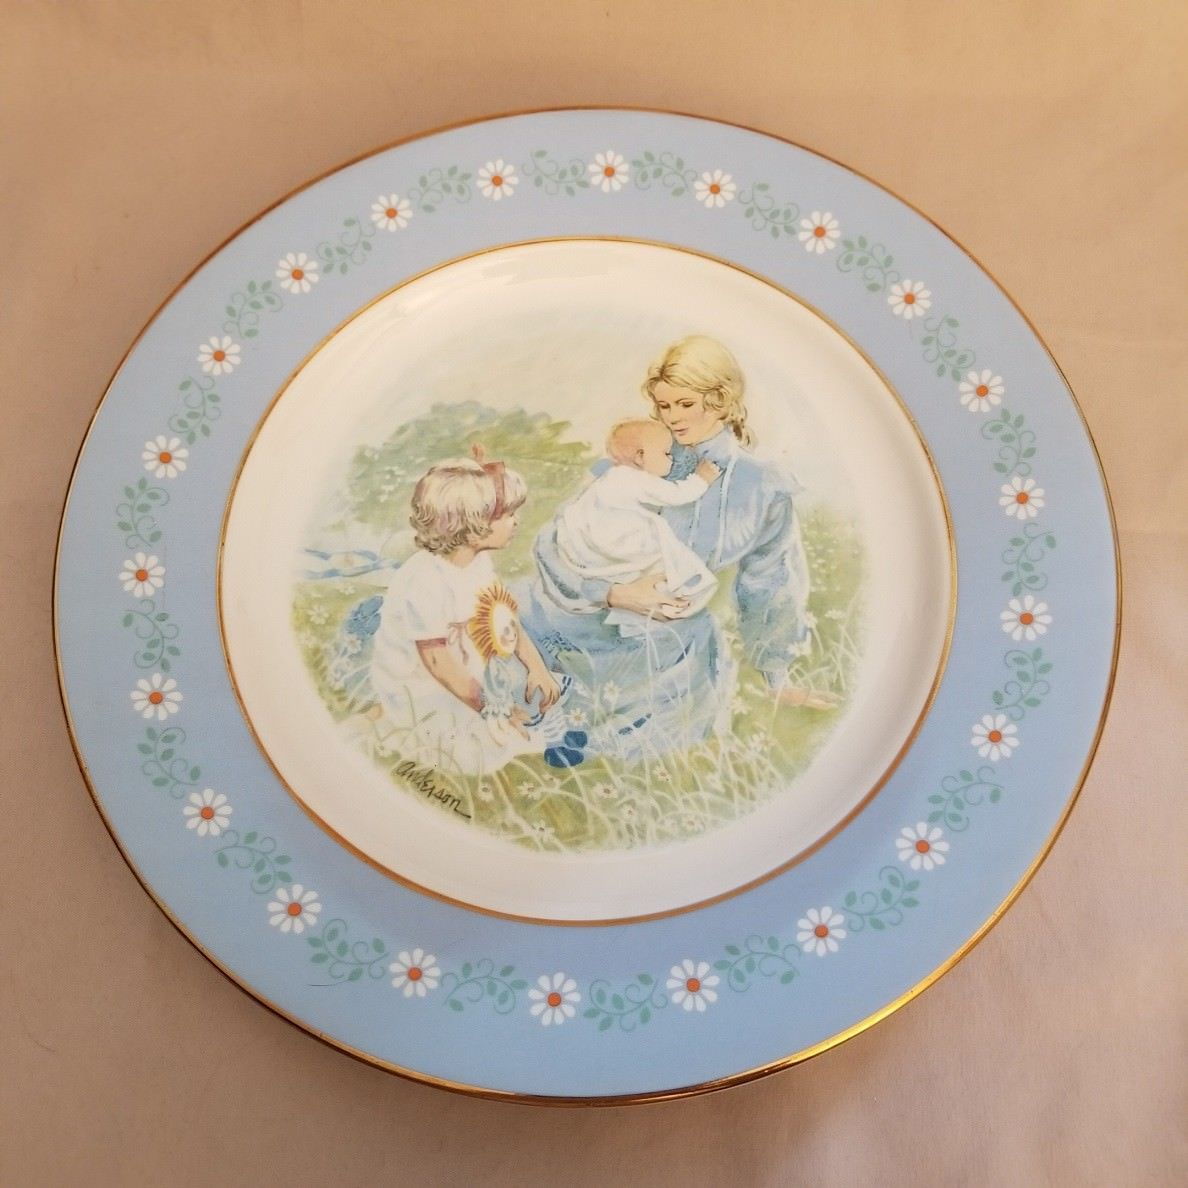 VINTAGE 1974 Collector Plate Tenderness Avon Commemorative Pontesa Ironstone